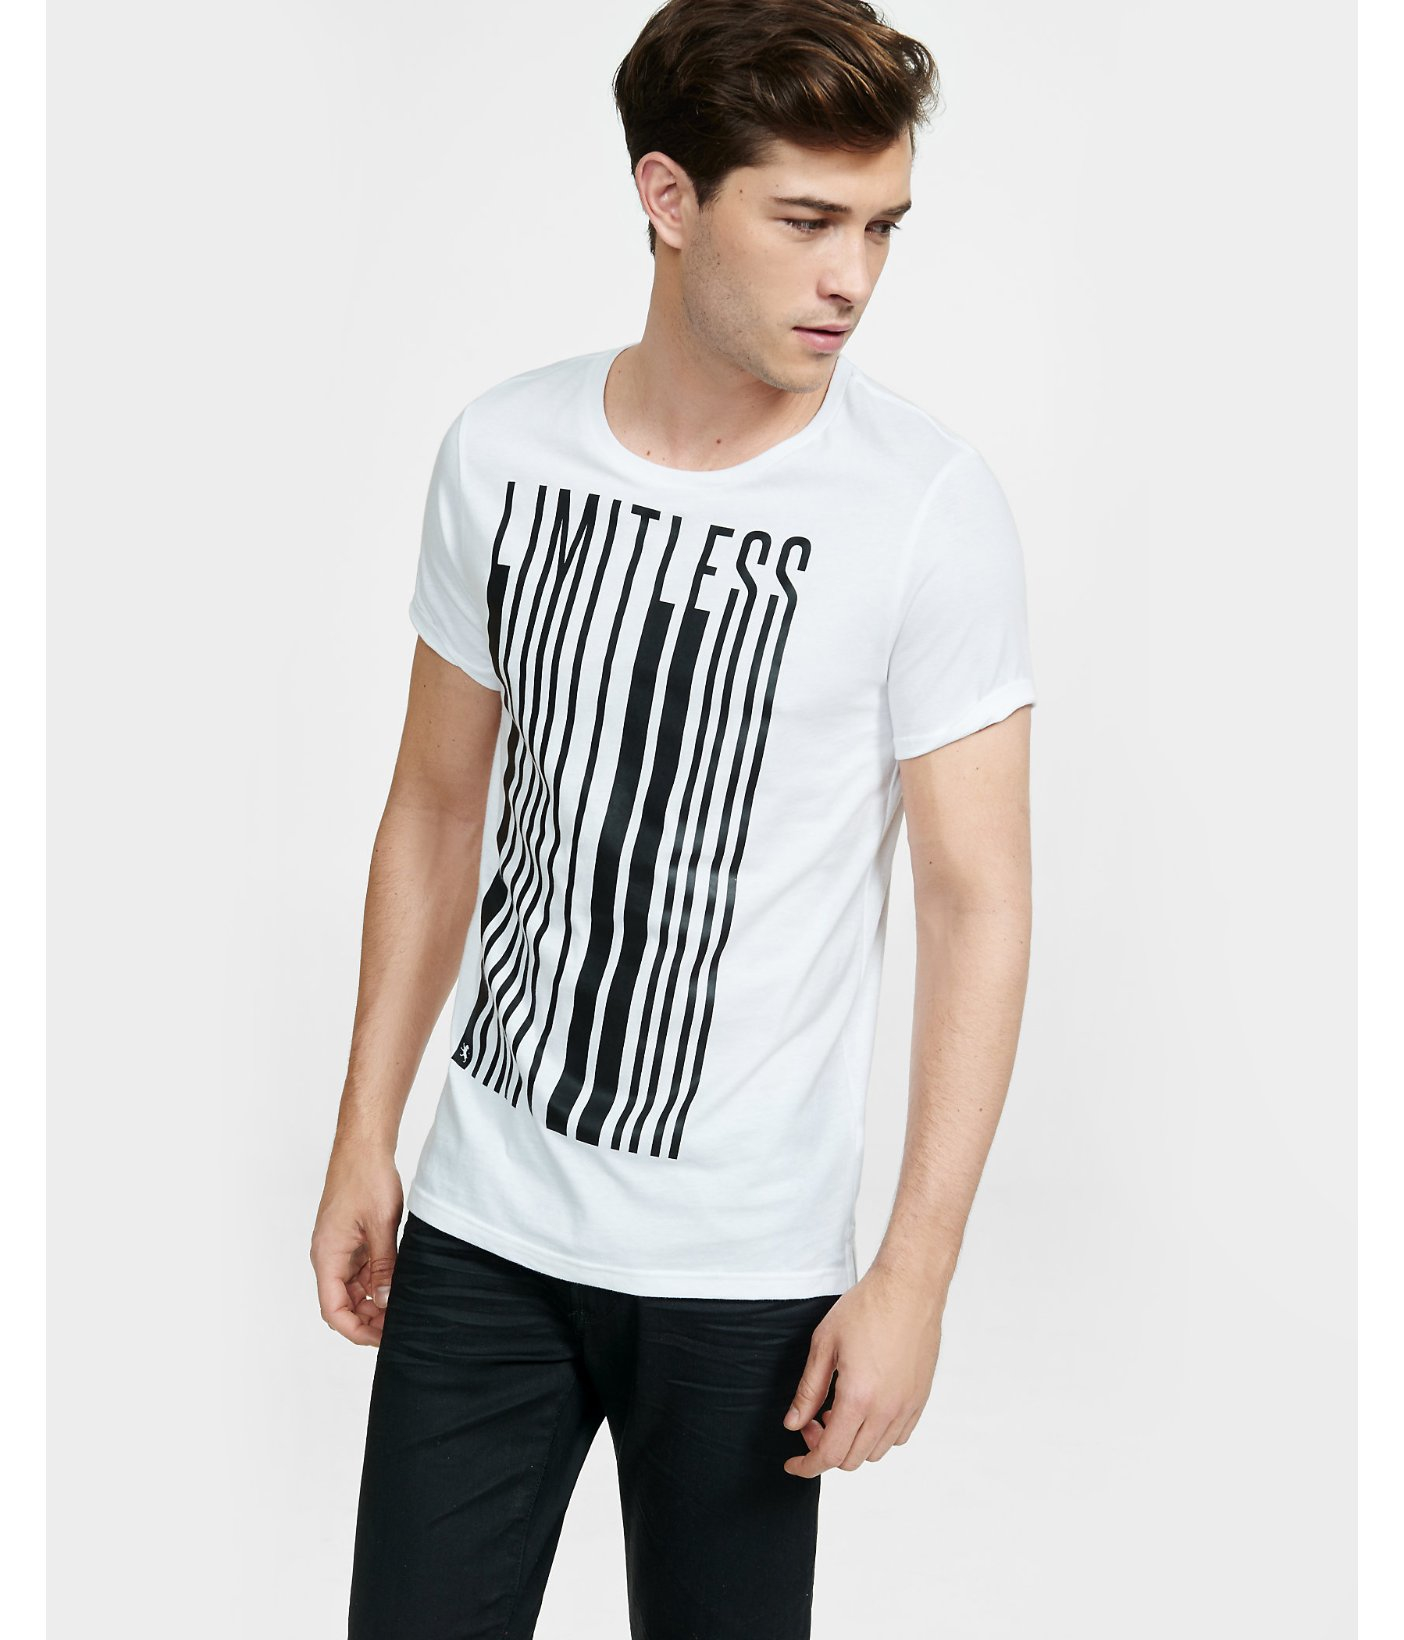 Express Limitless Stretch Graphic T Shirt In White For Men